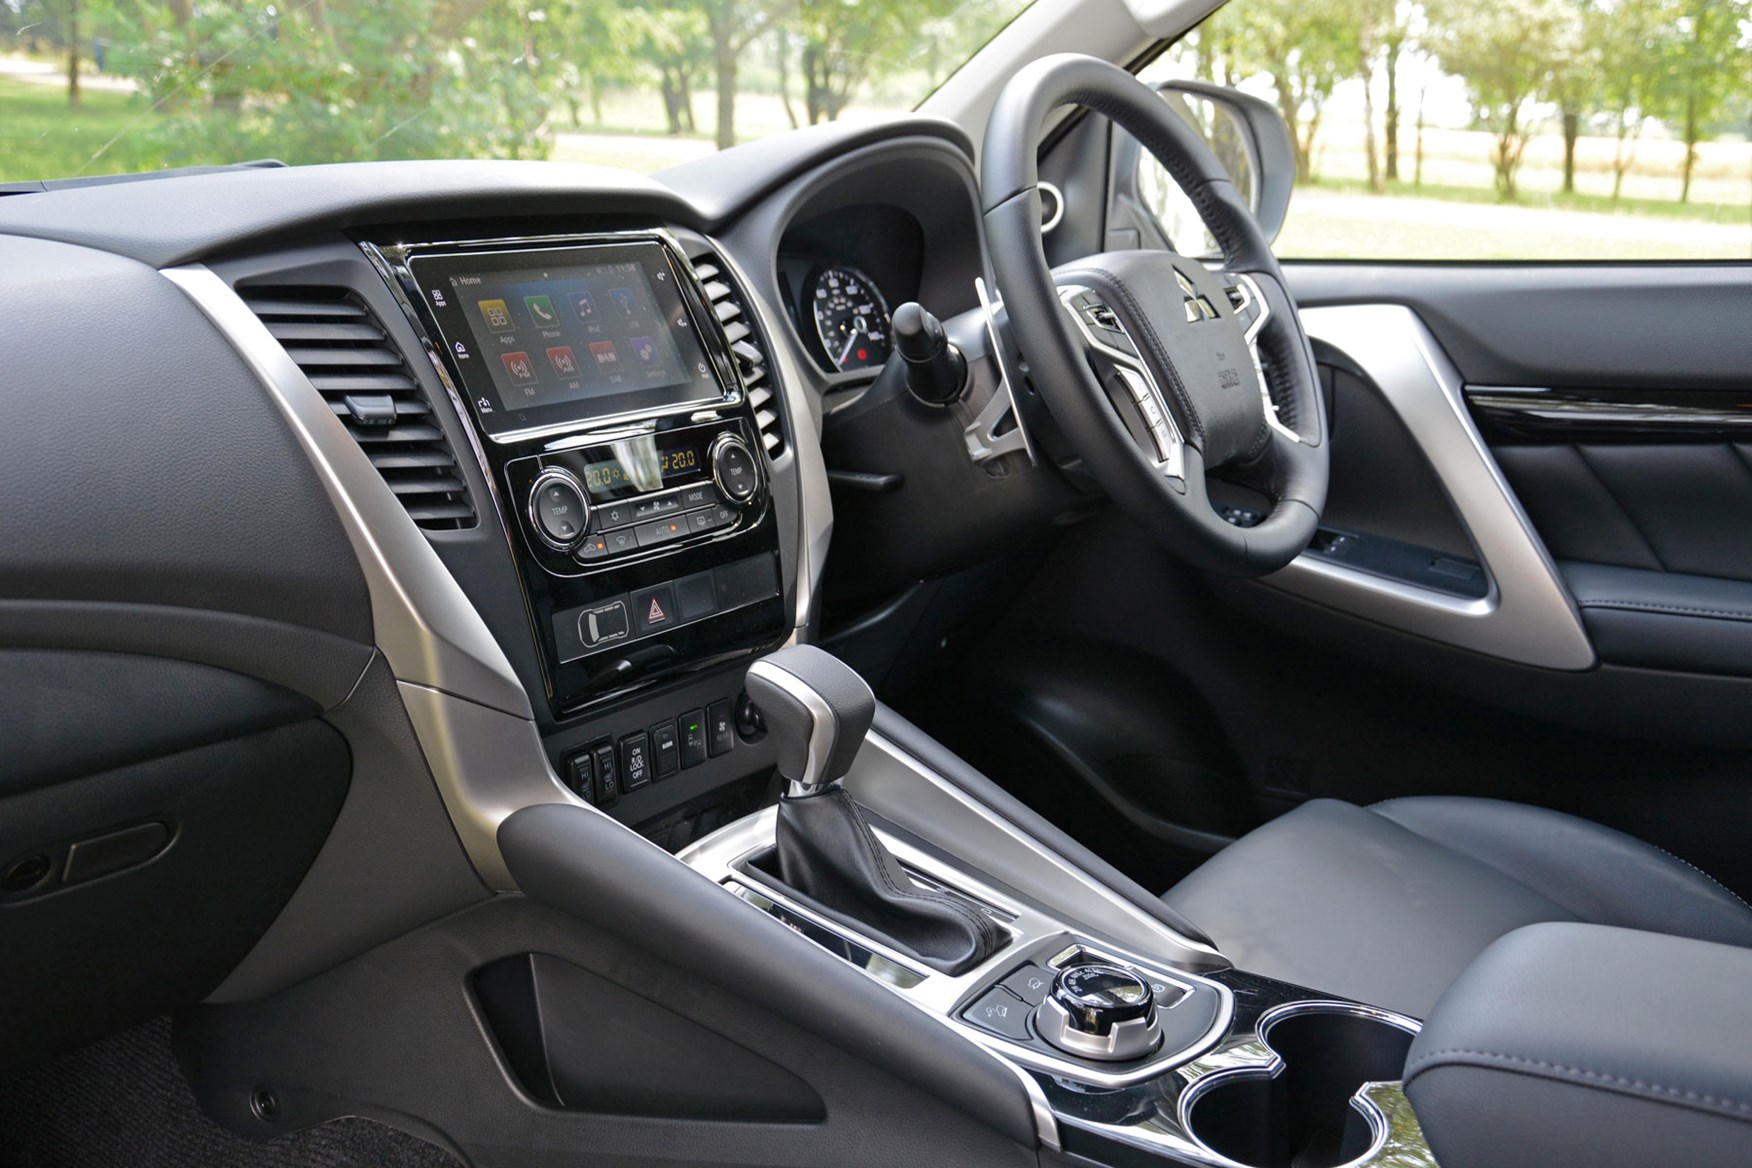 Mitsubishi Shogun Sport Commercial 4x4 van review - cab interior showing shifter for eight-speed automatic gearbox